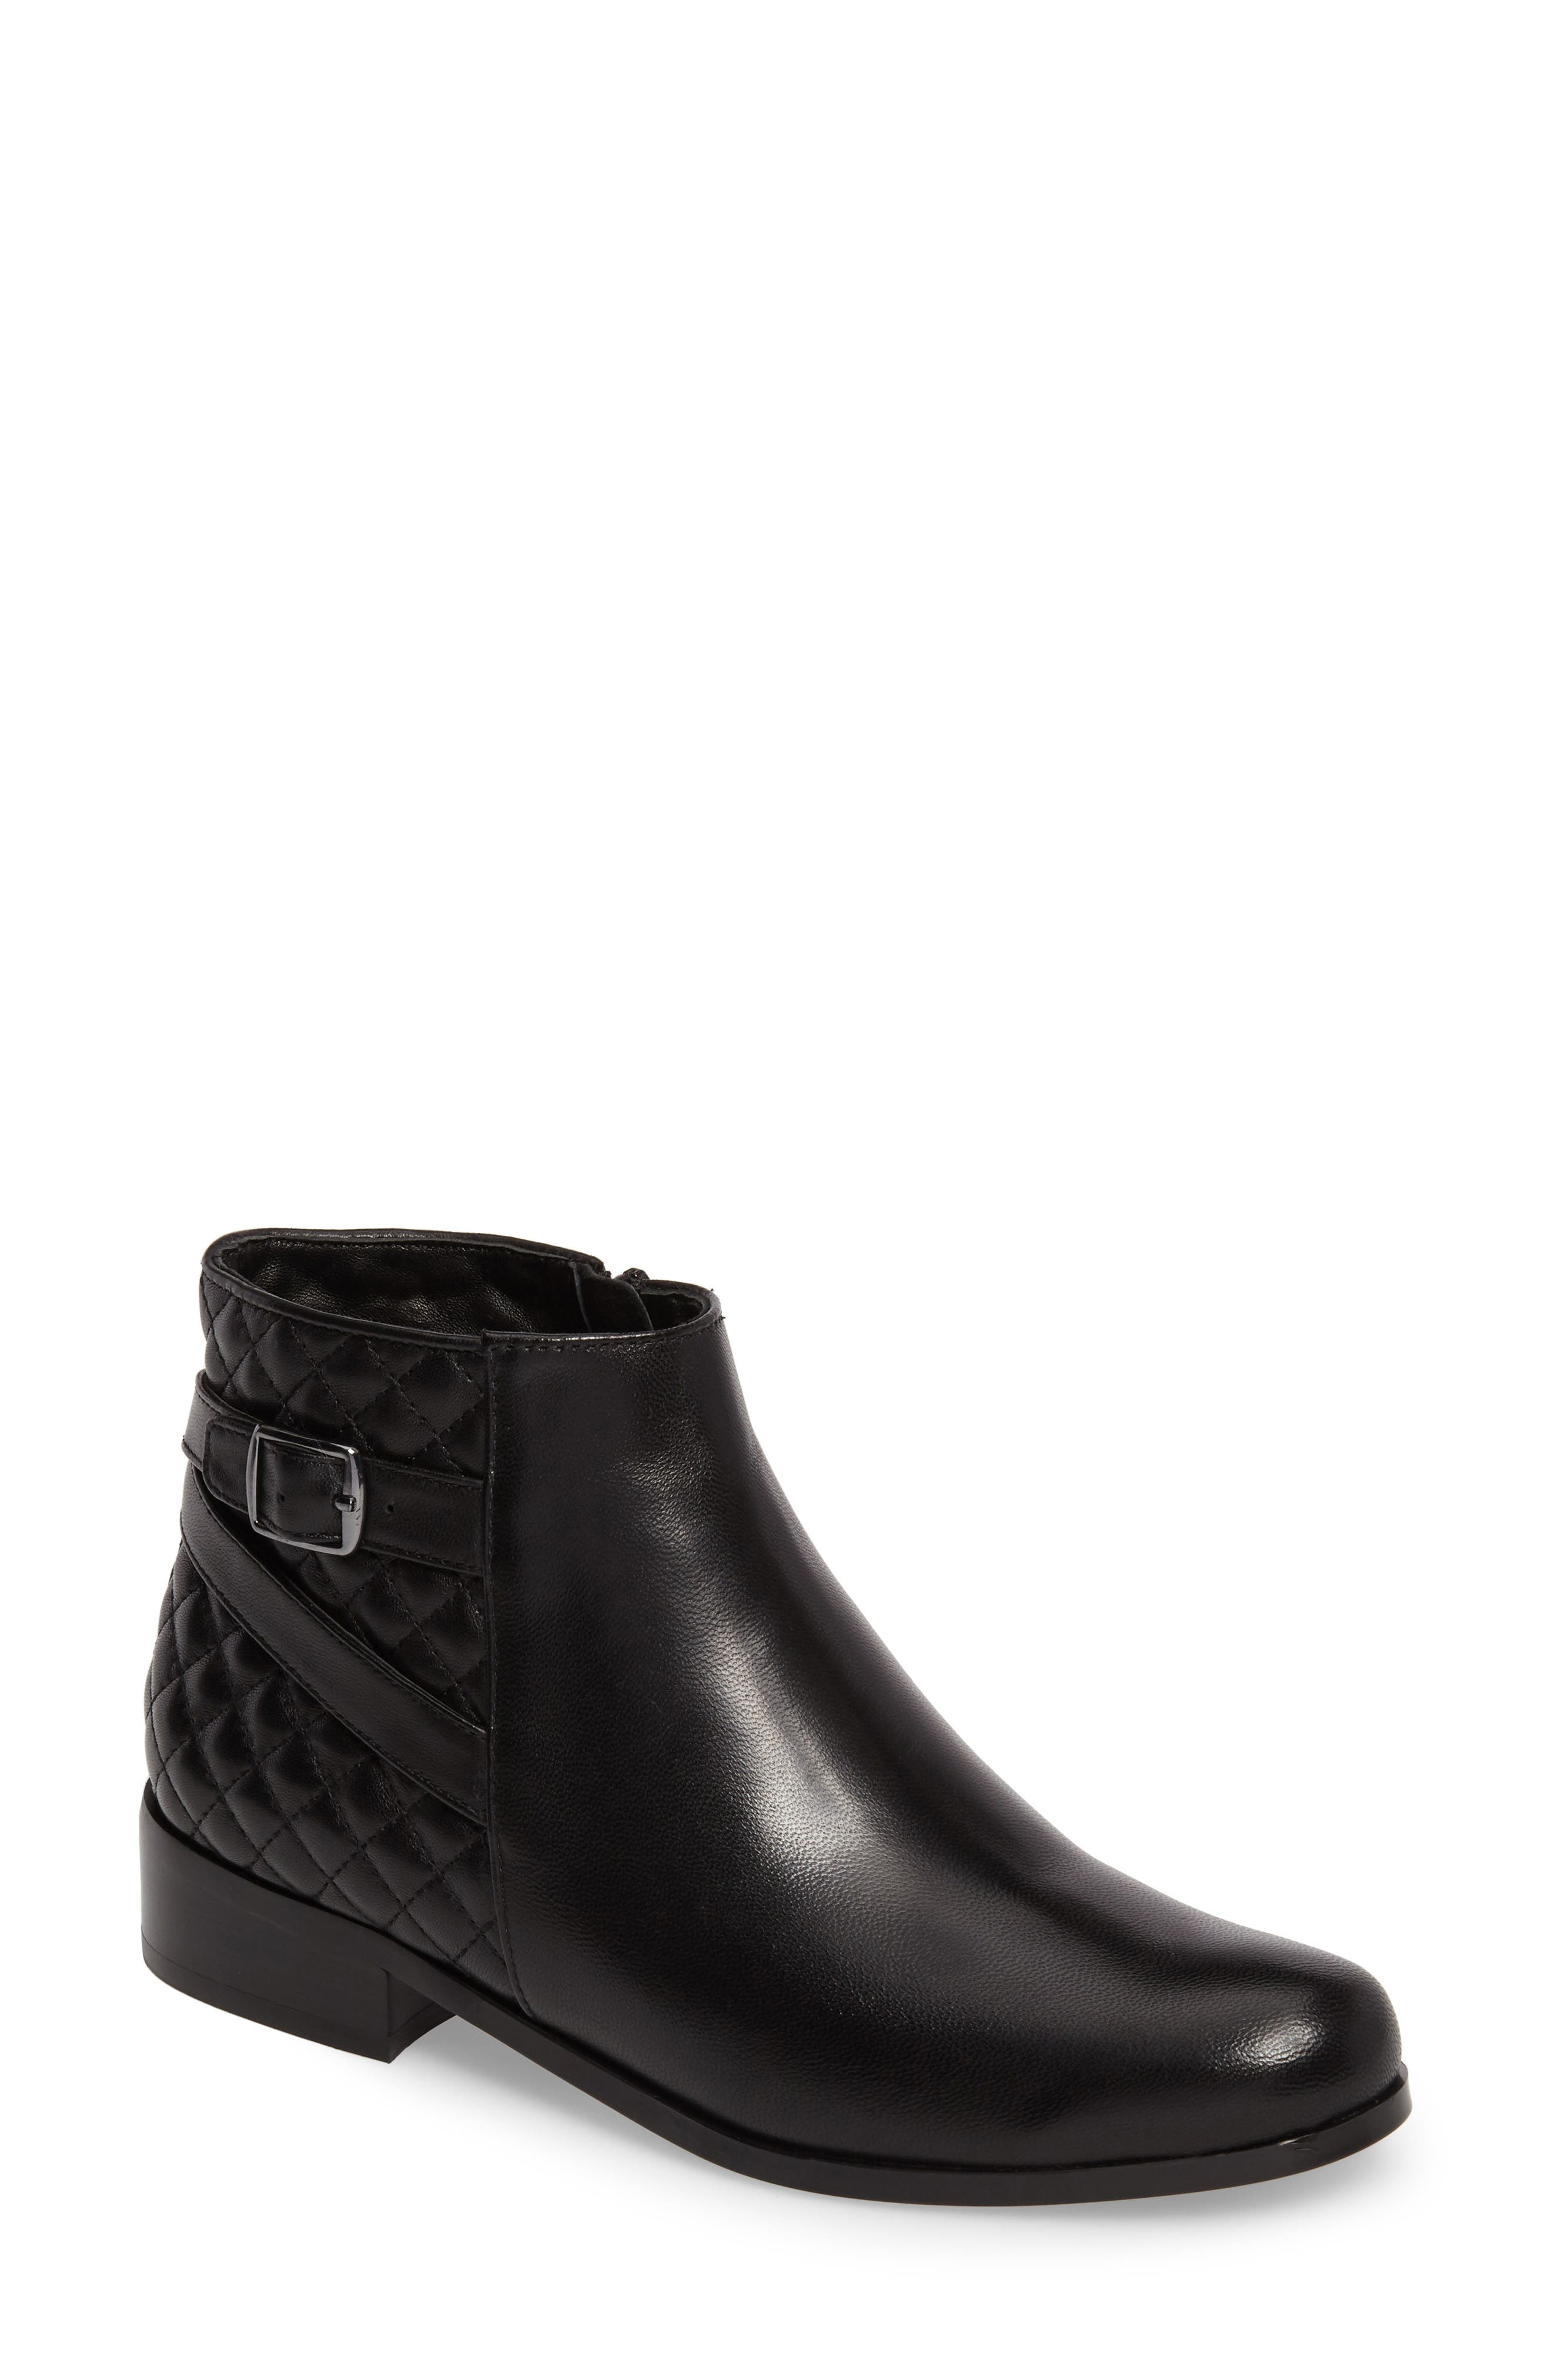 Reanne Buckle Bootie,                             Main thumbnail 1, color,                             Black Leather